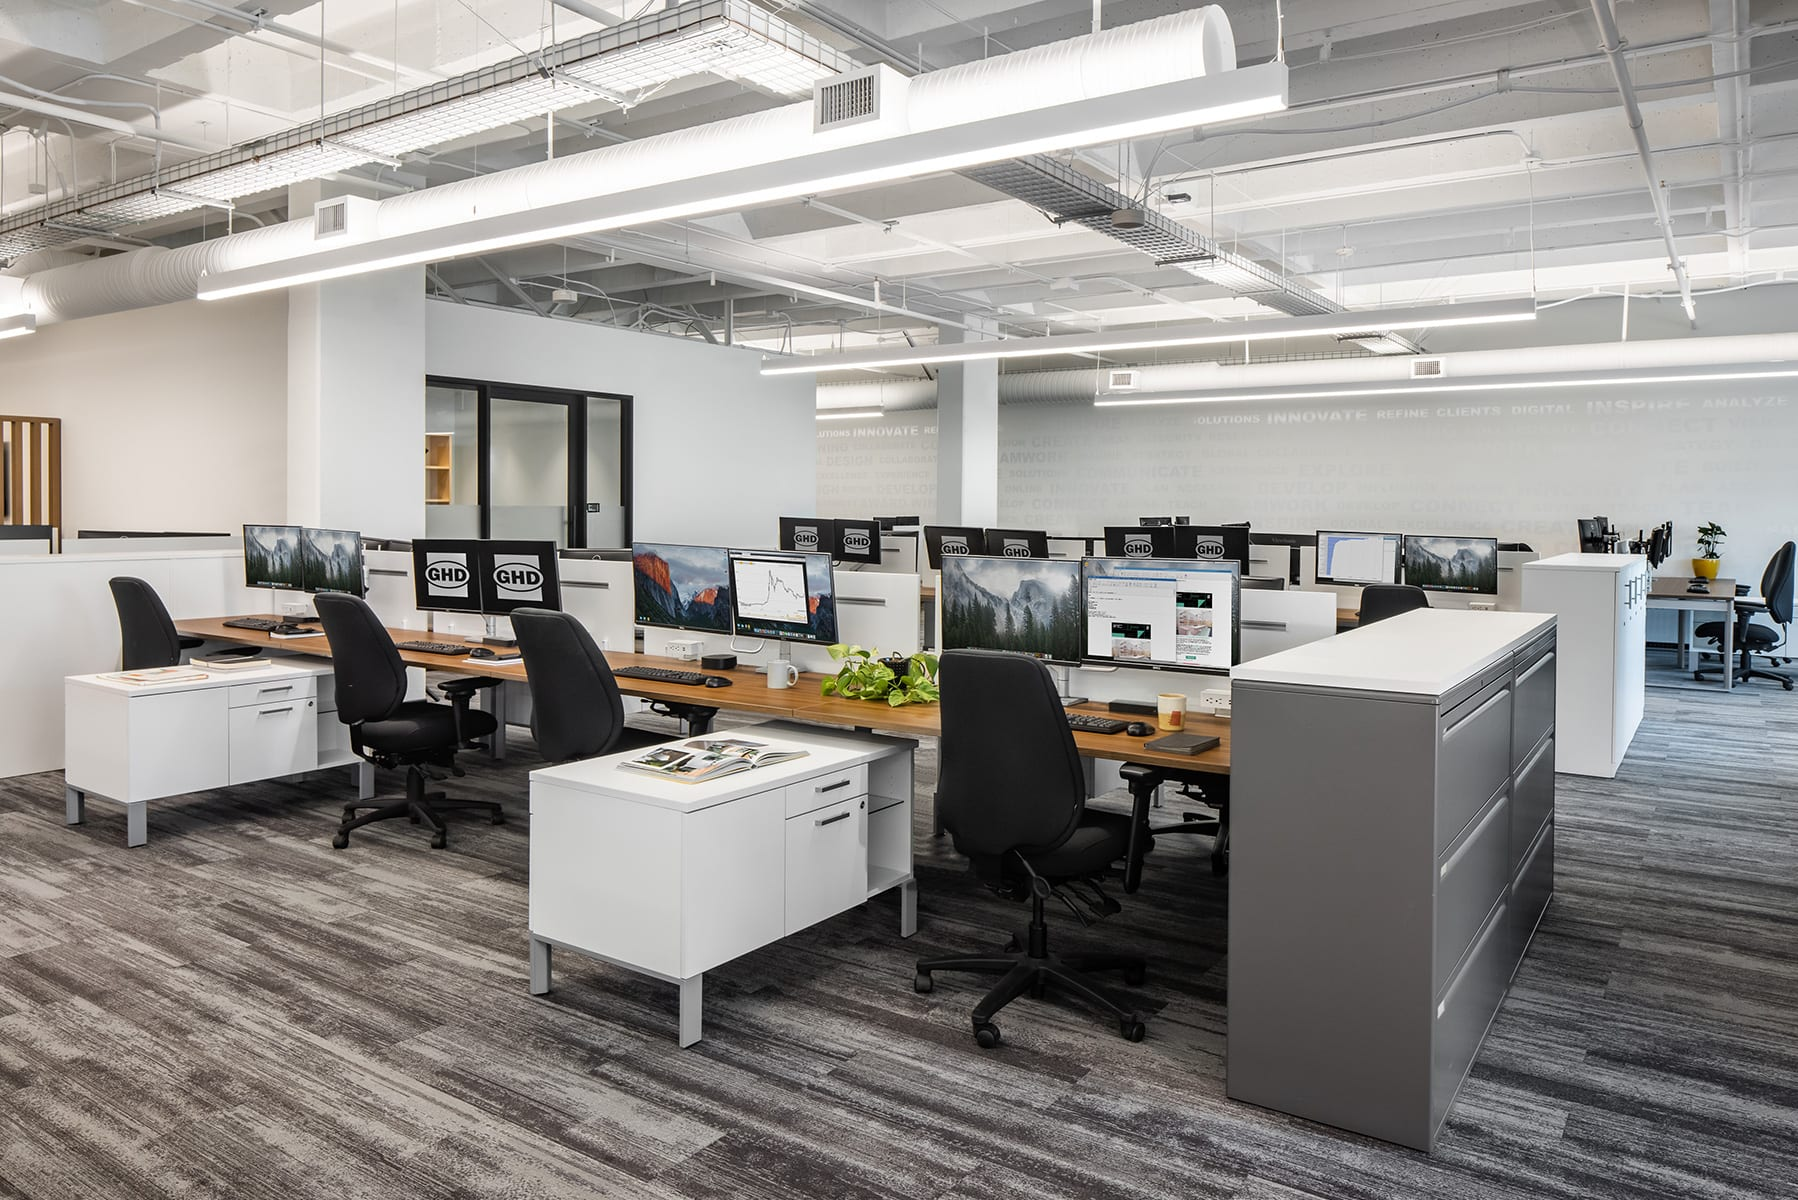 Construction Management Services for GHD's open-plan office with new flooring, vinyl graphics, open ceiling and new mechanical layouts